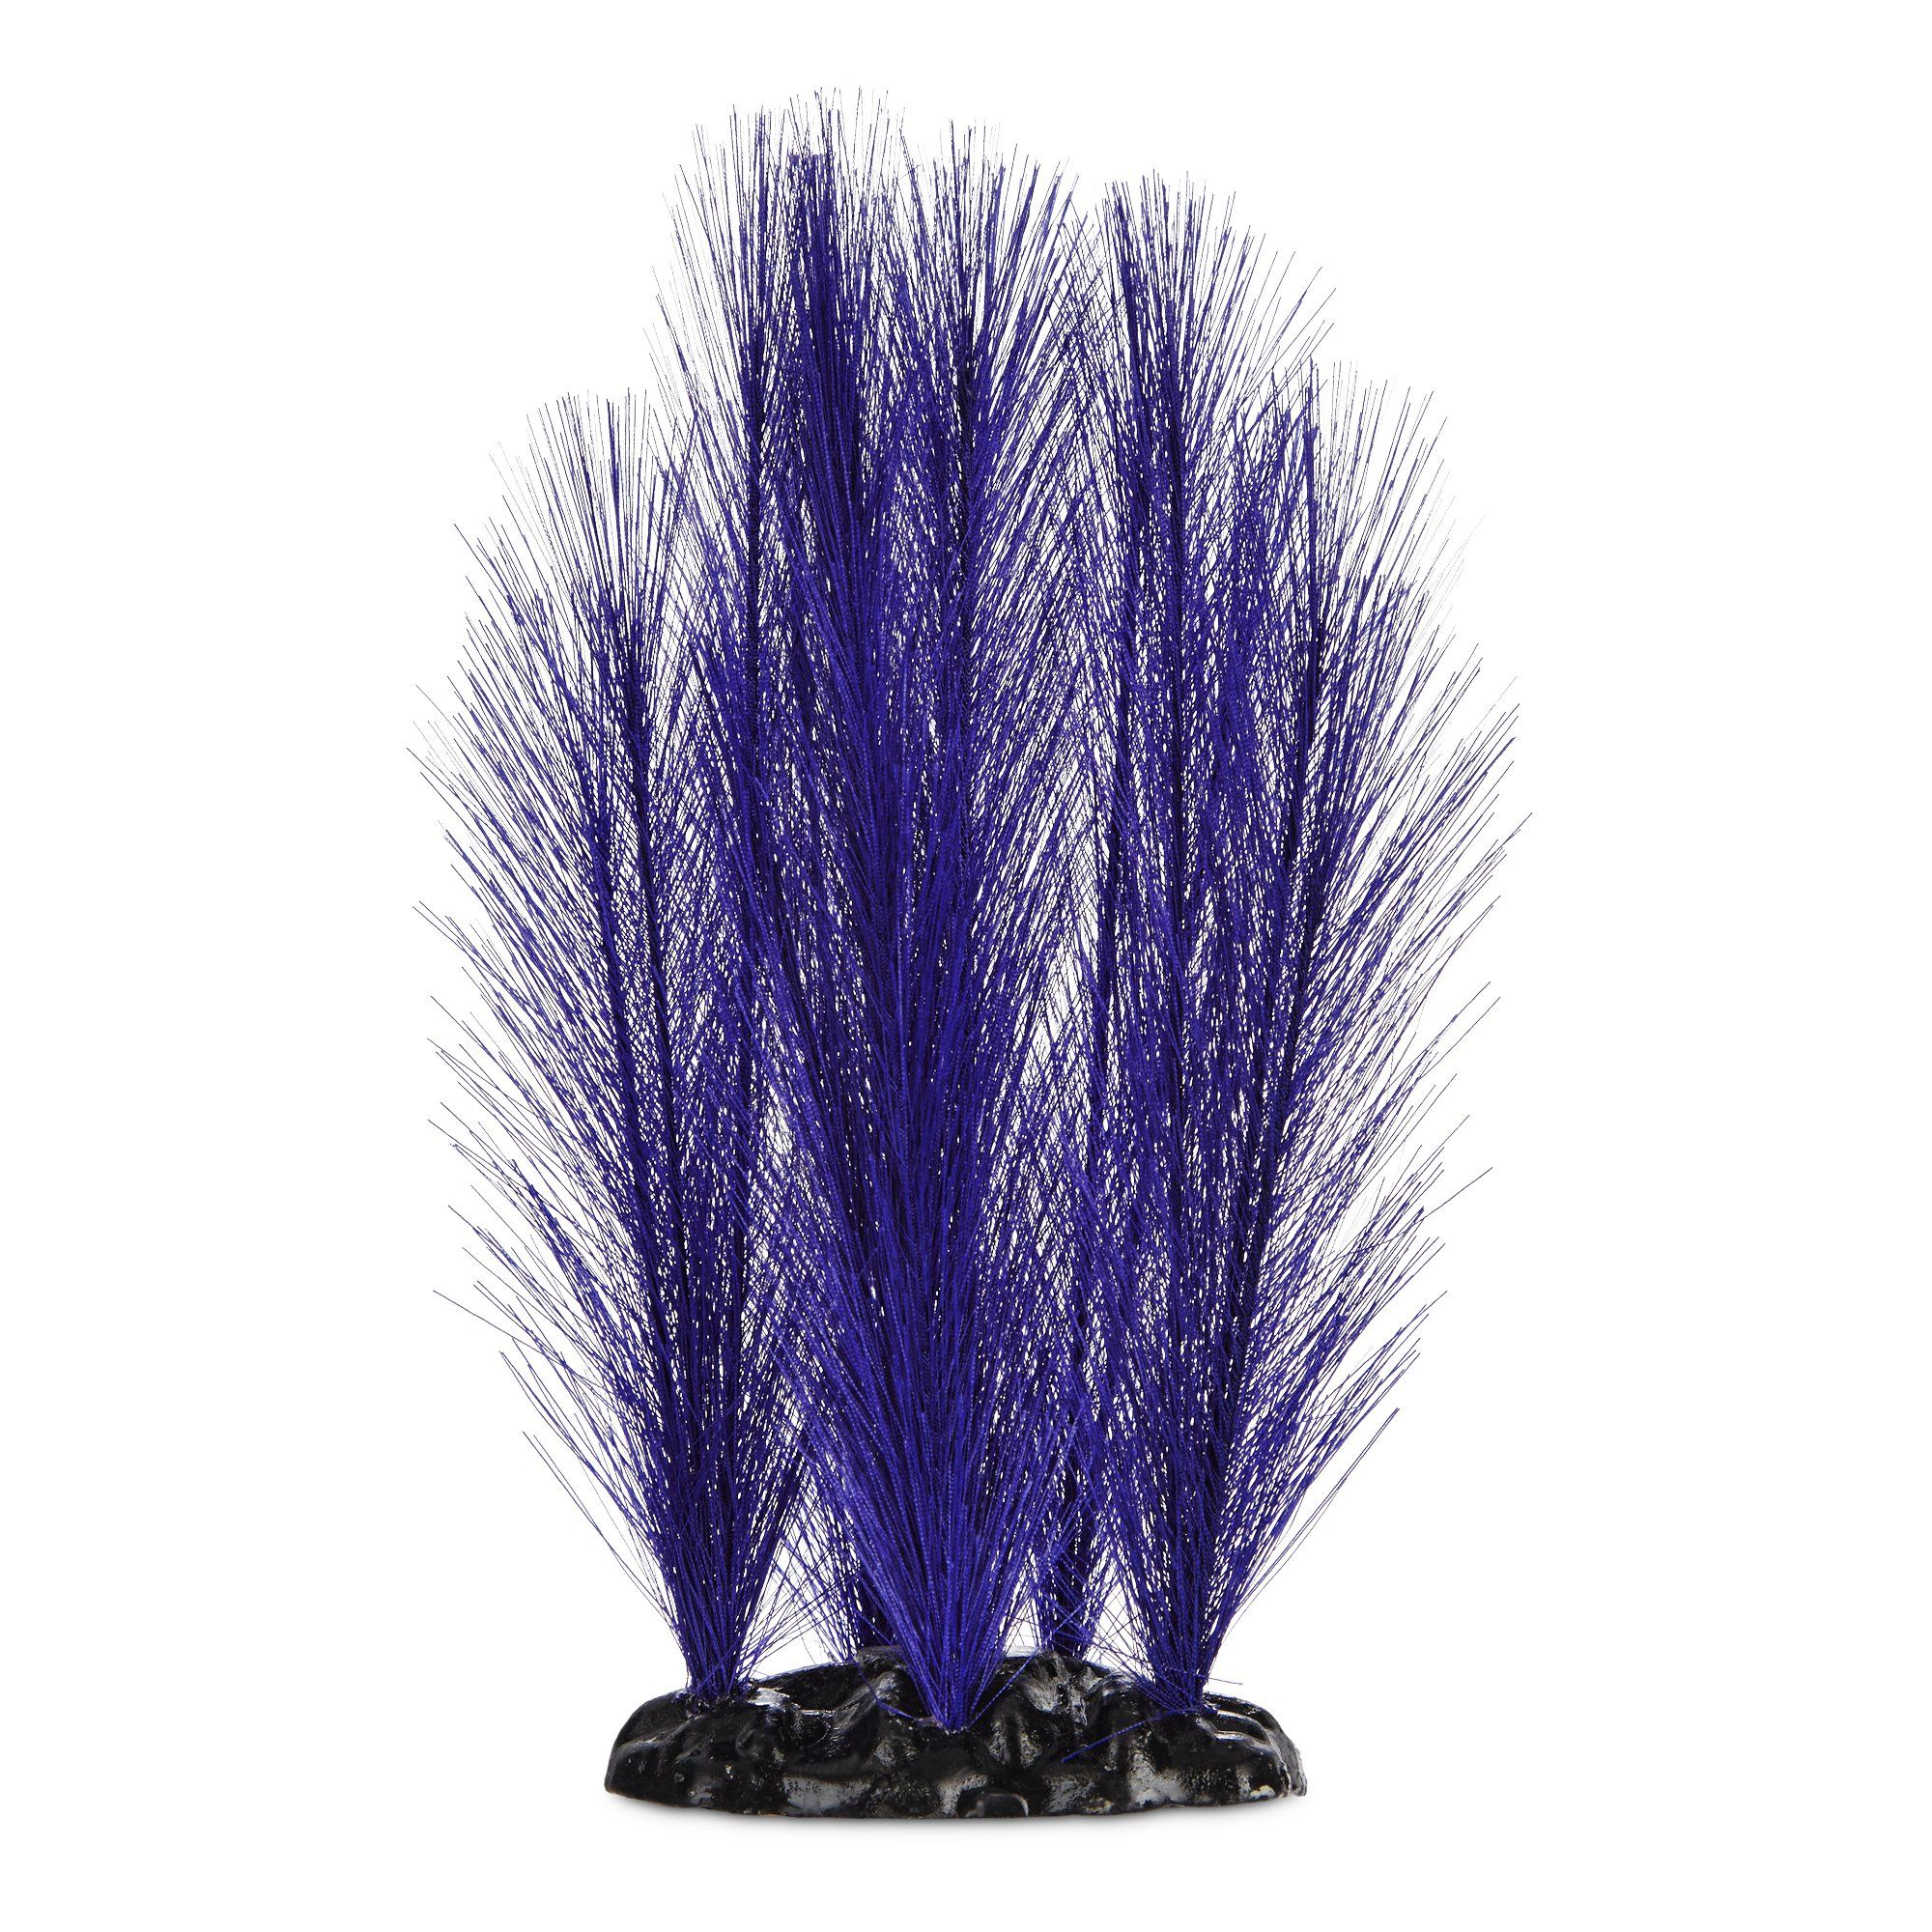 Imagitarium Purple Feather Silk Aquarium Plant, Medium